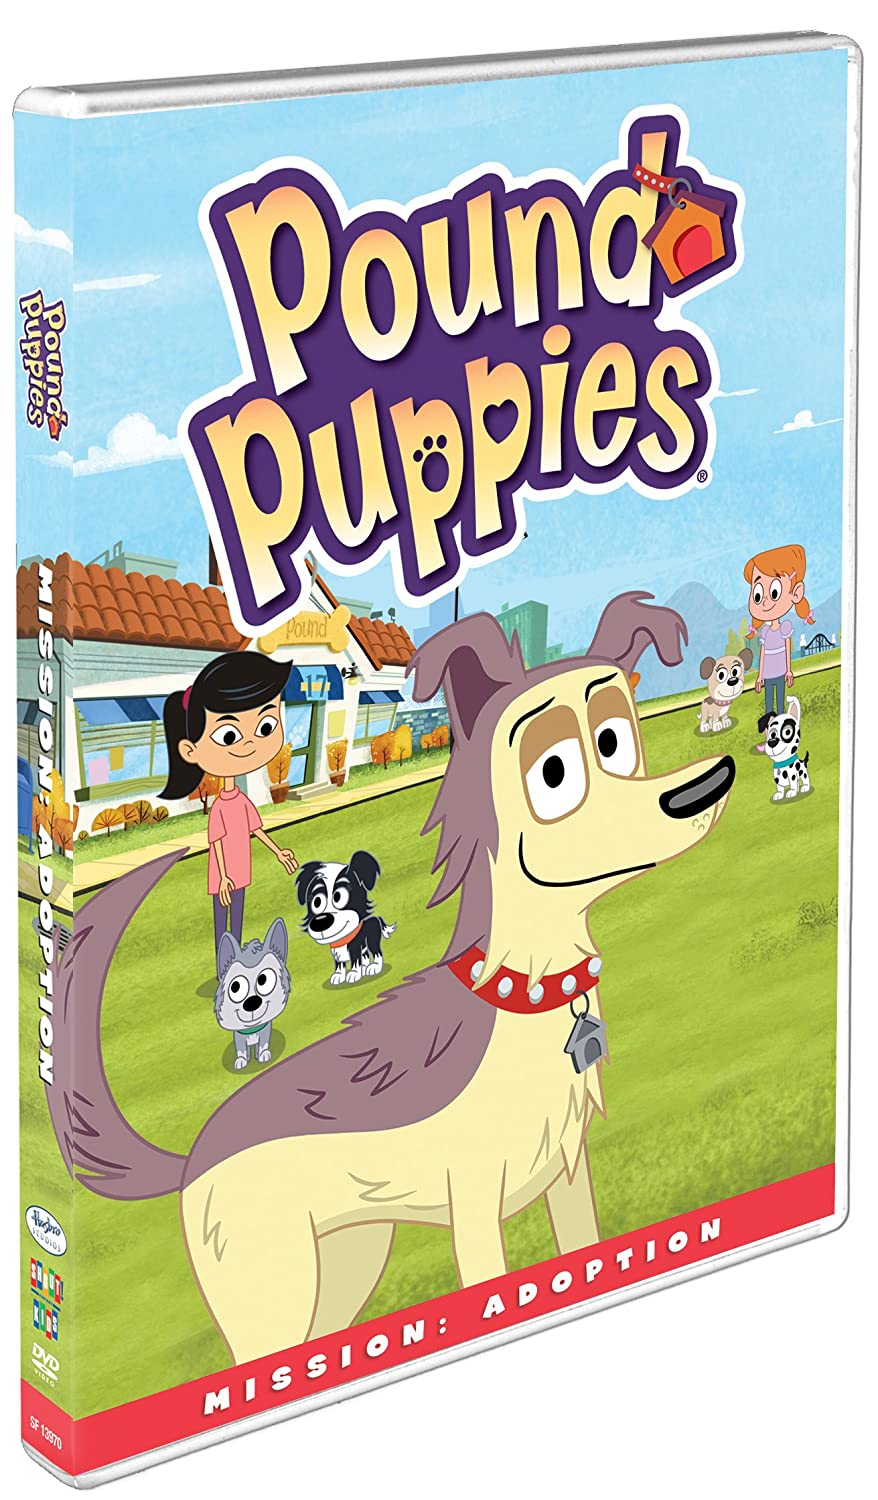 Amazon Pound Puppies Mission Adoption Eric McCormack John